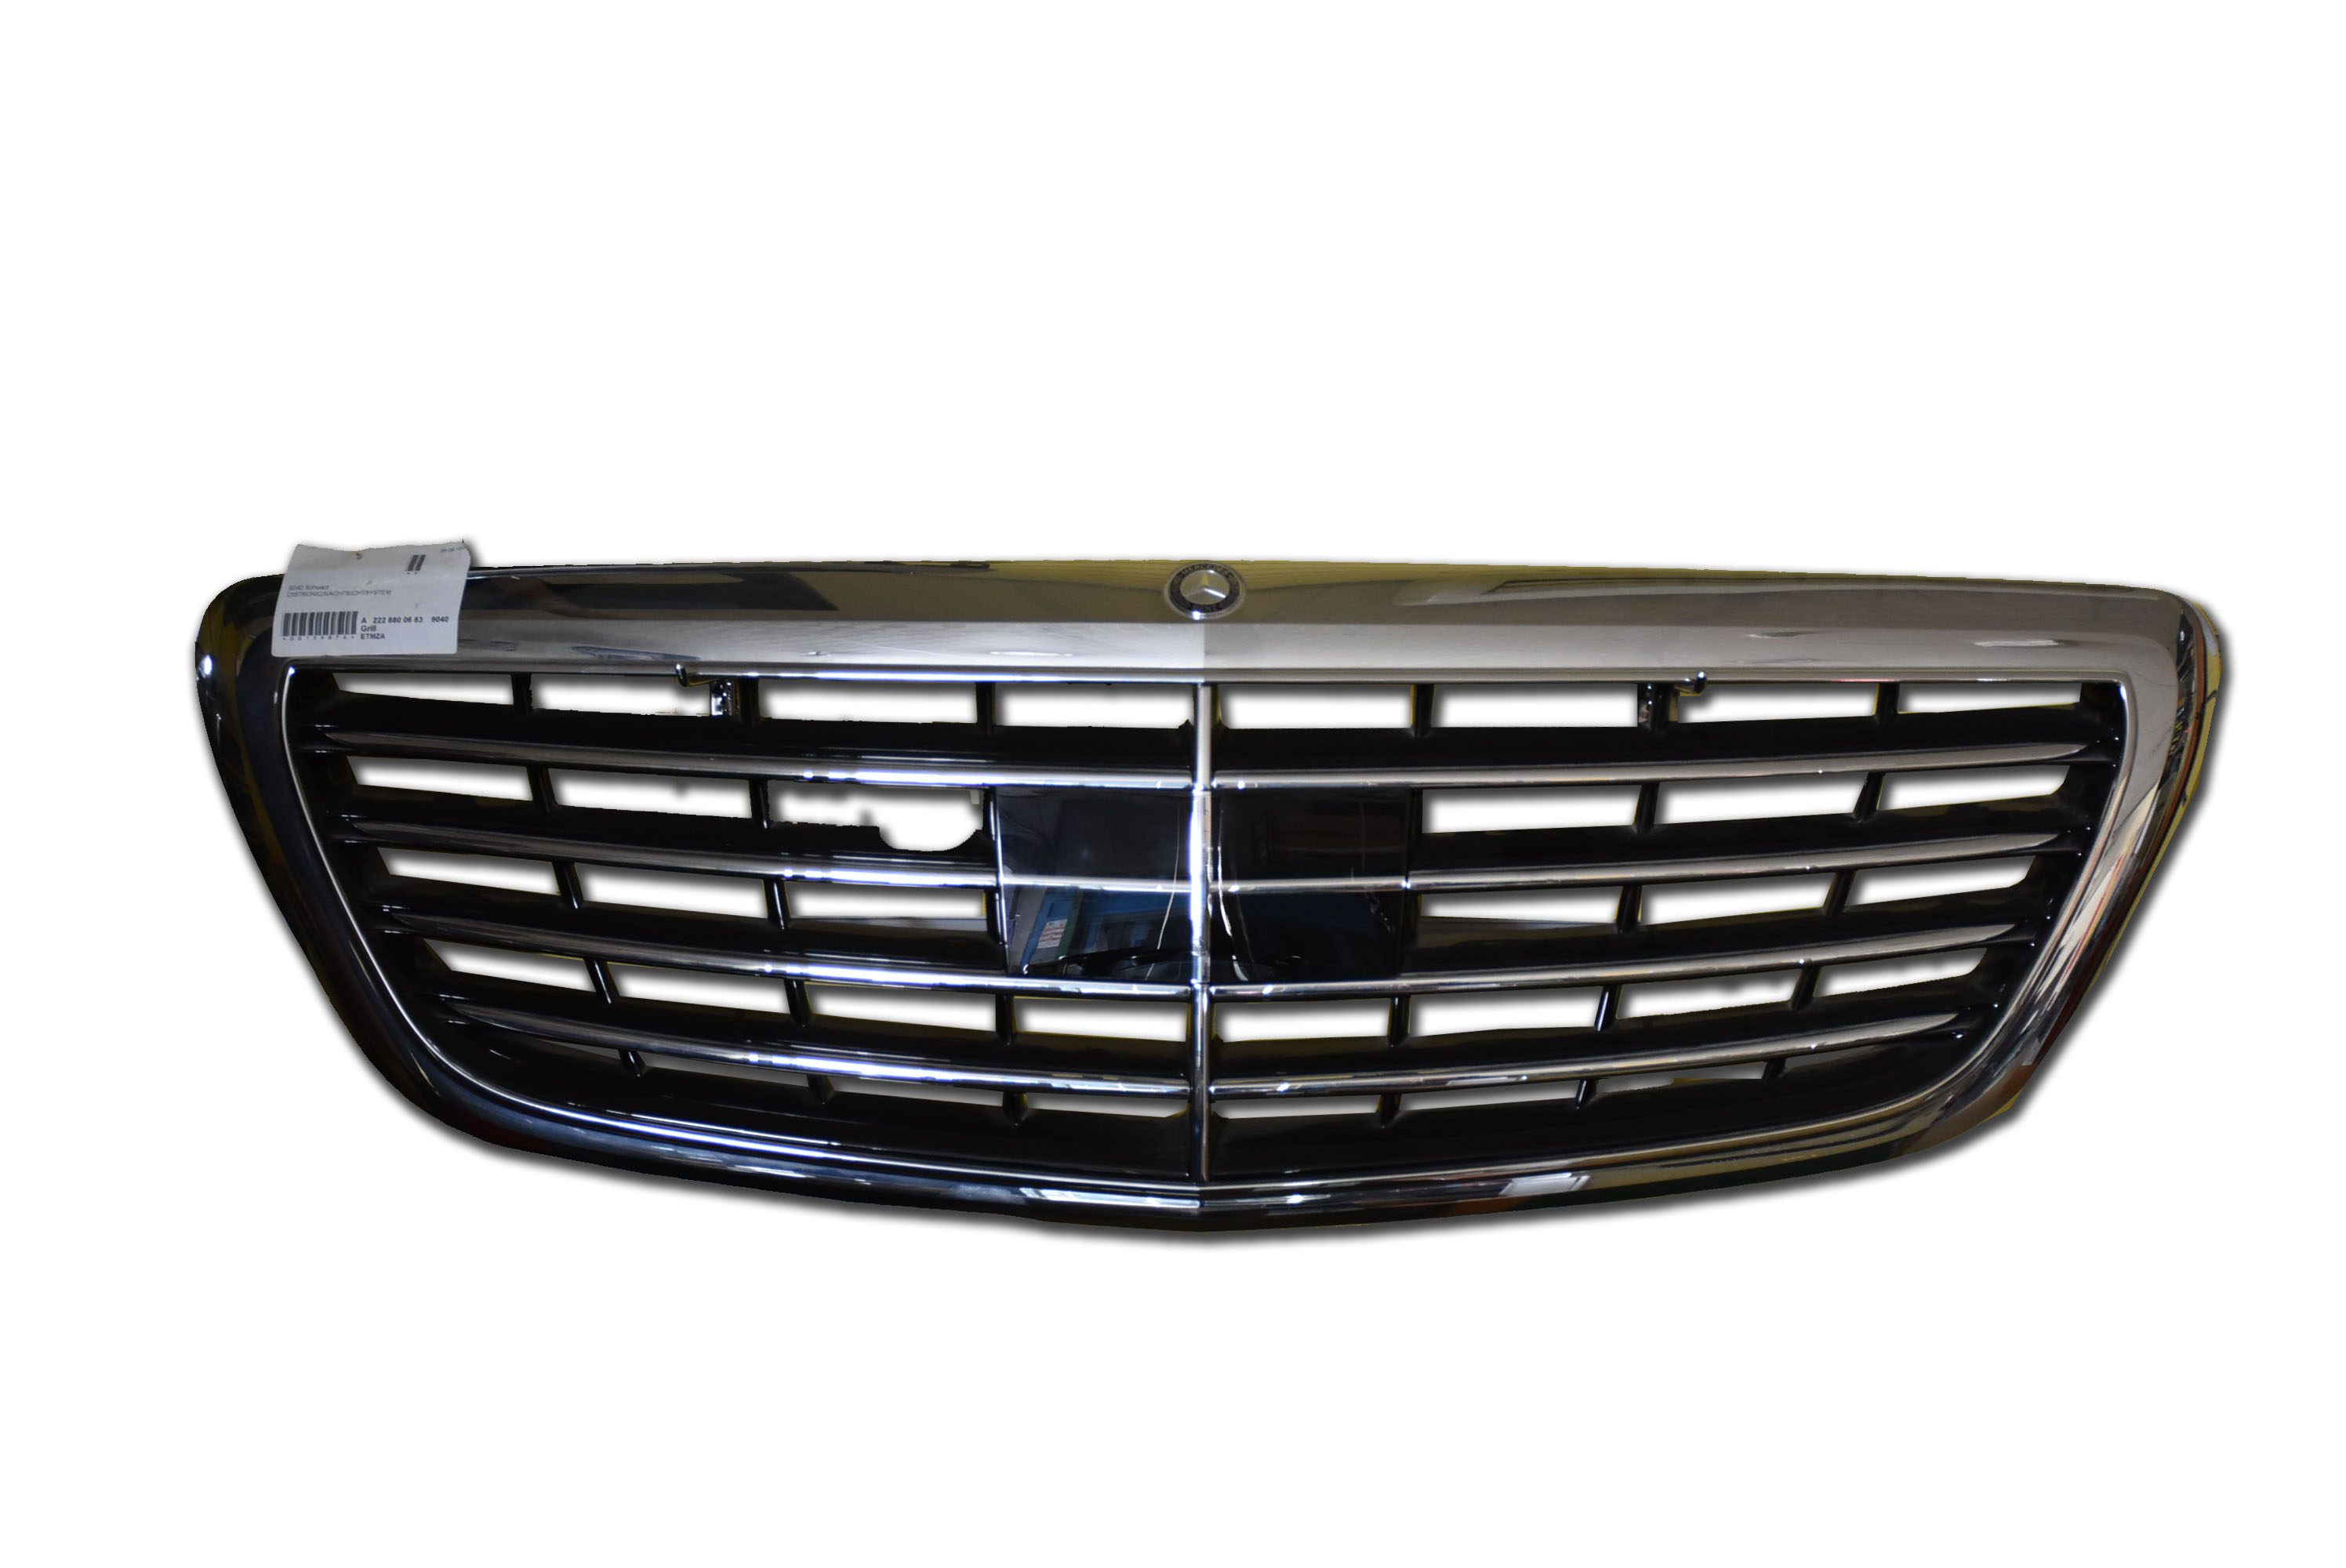 A2228800683 9040 grille